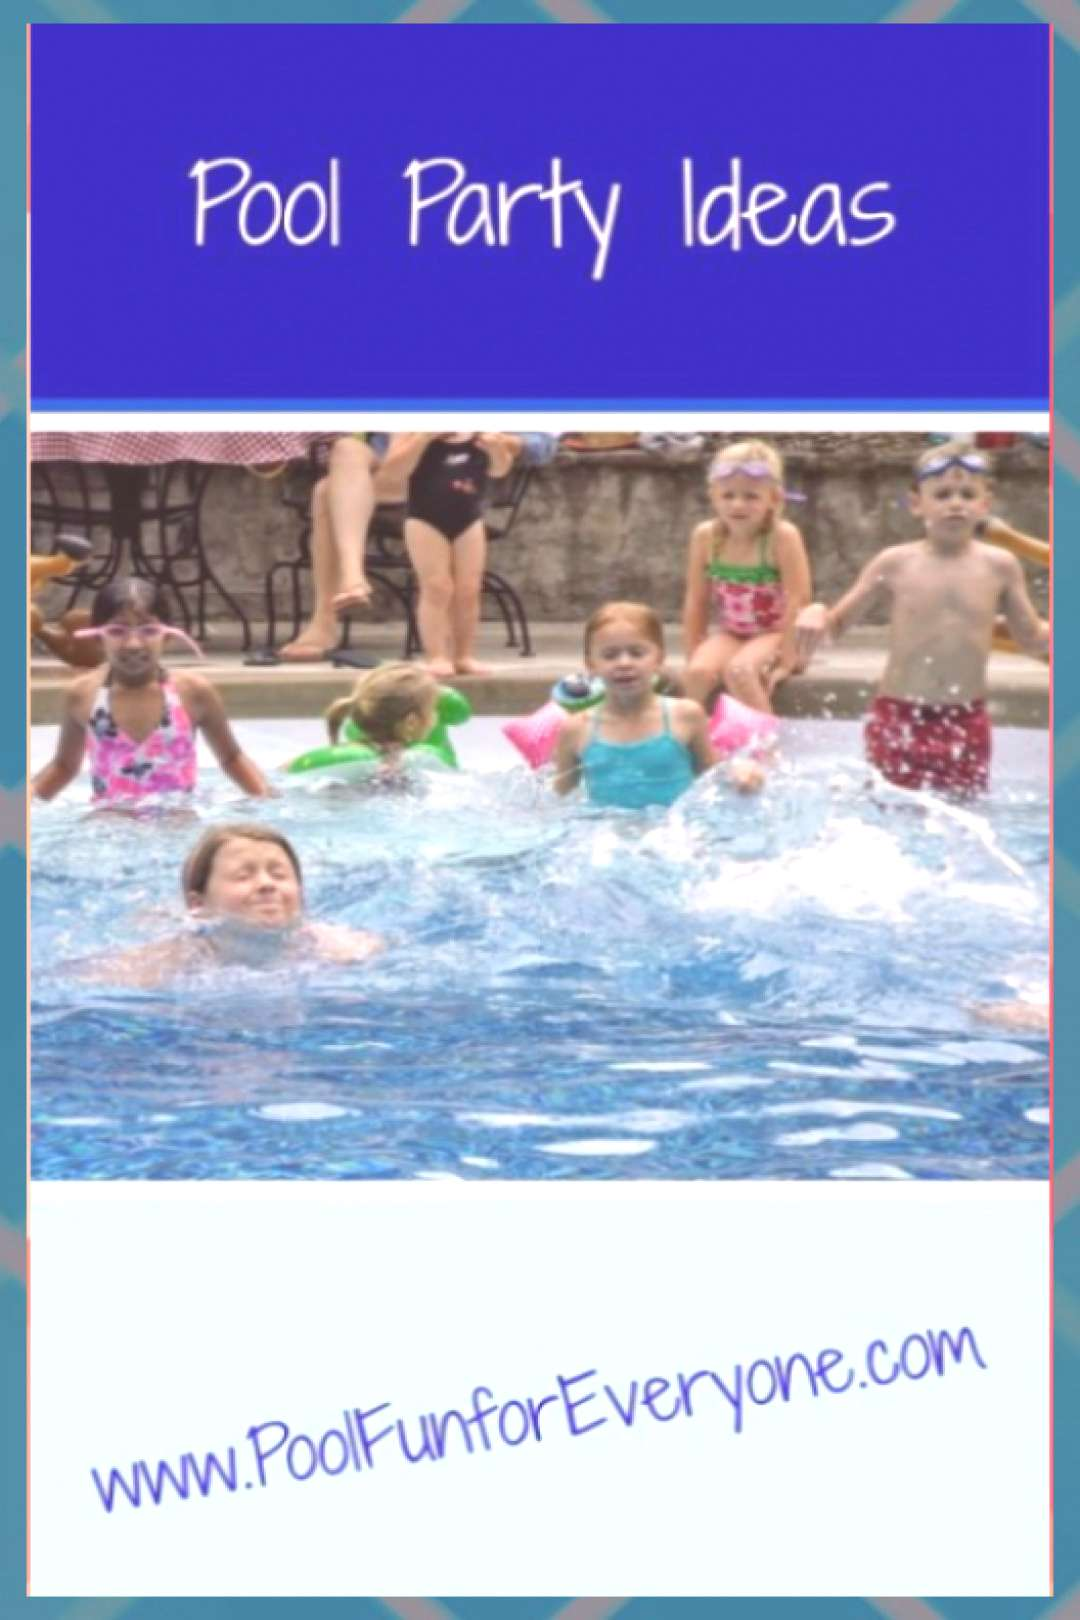 Kids Pool Party Ideas - Mermaids, Pirates and Hopping Frogs Pool Party Ideas